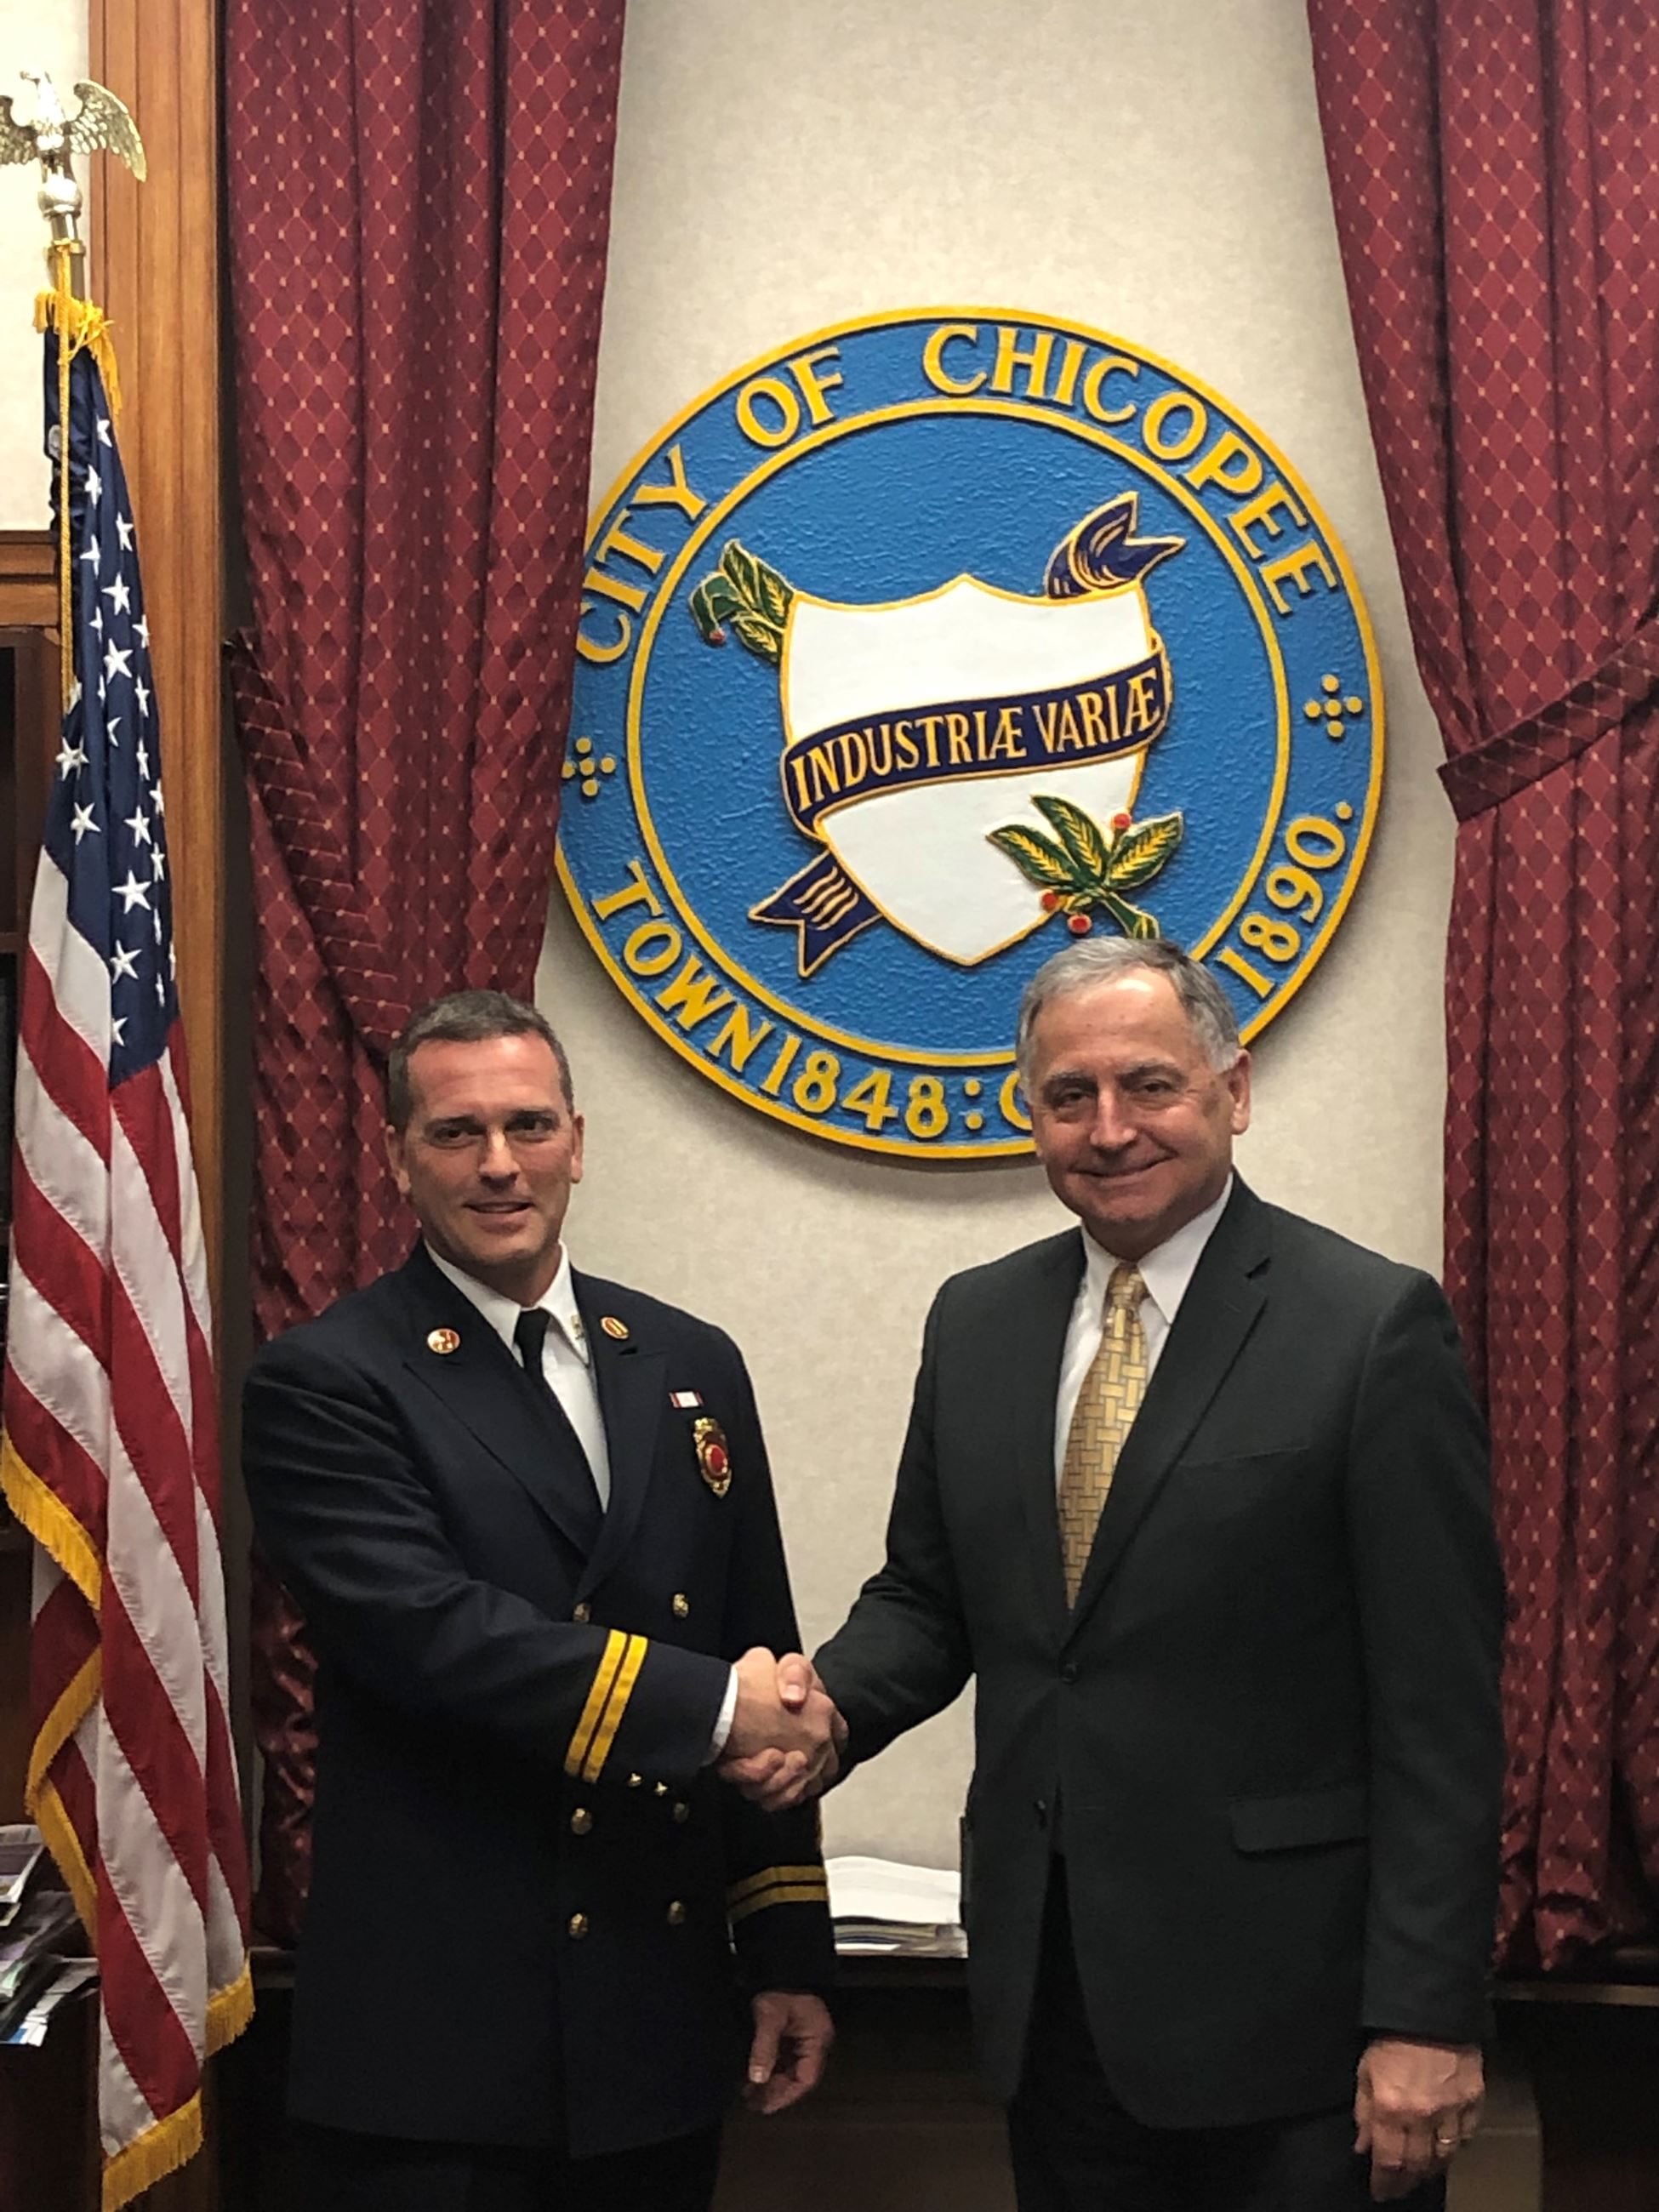 Temporary Chief Stamborski Photo with Mayor Kos